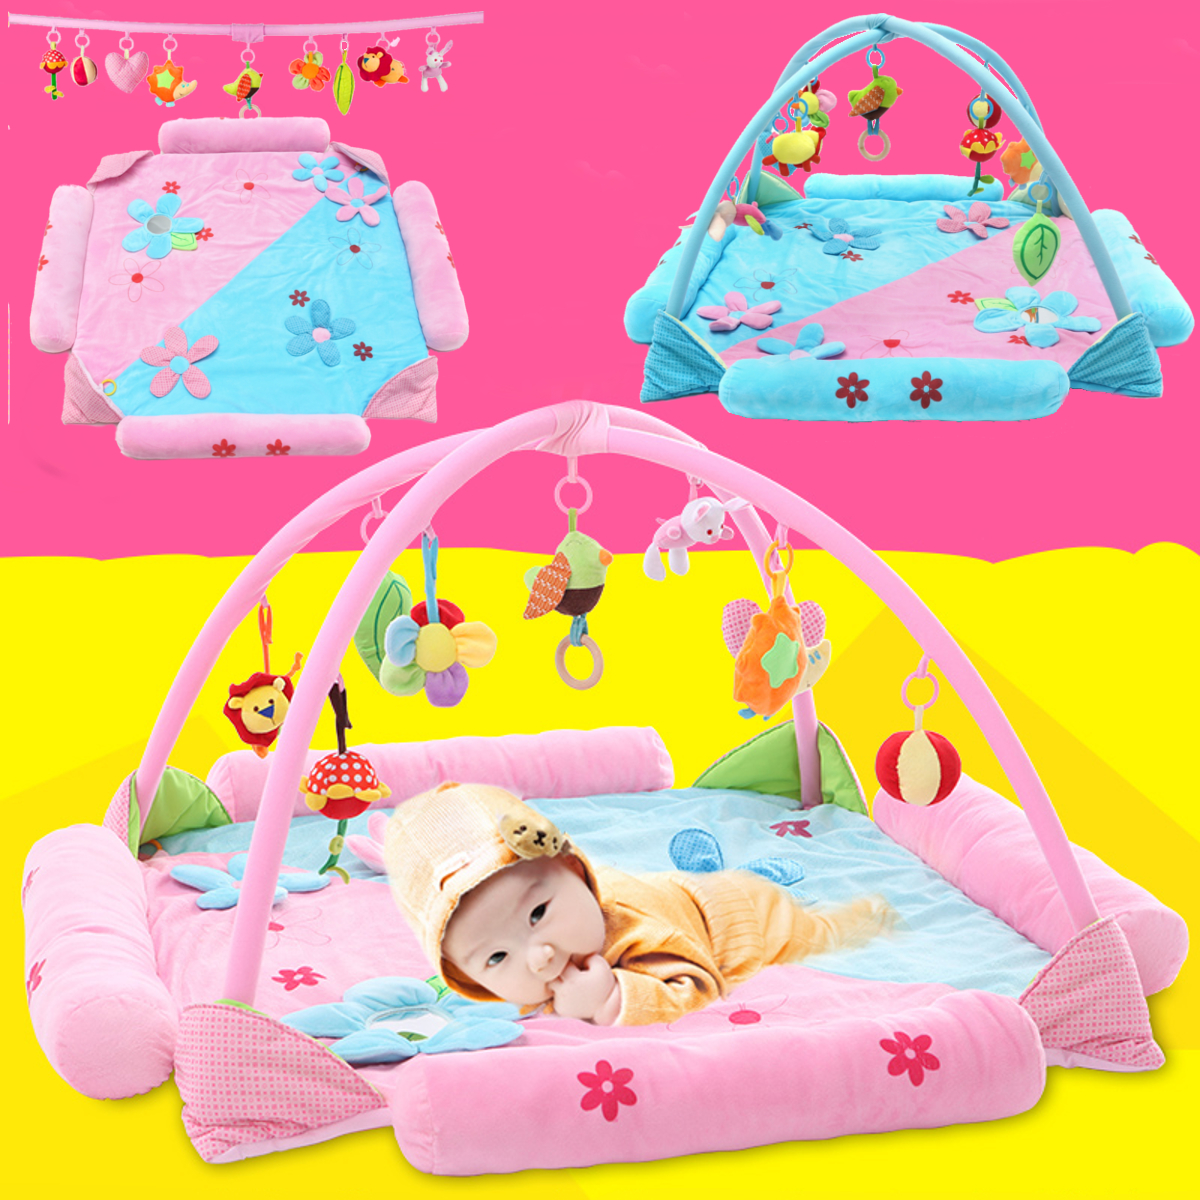 Newborn Kids Baby Musical Play Mat Activity Gym Playmat Soft Mat with Hanging Toys,Infant Toddler Toy/Gift,Development Station Toys